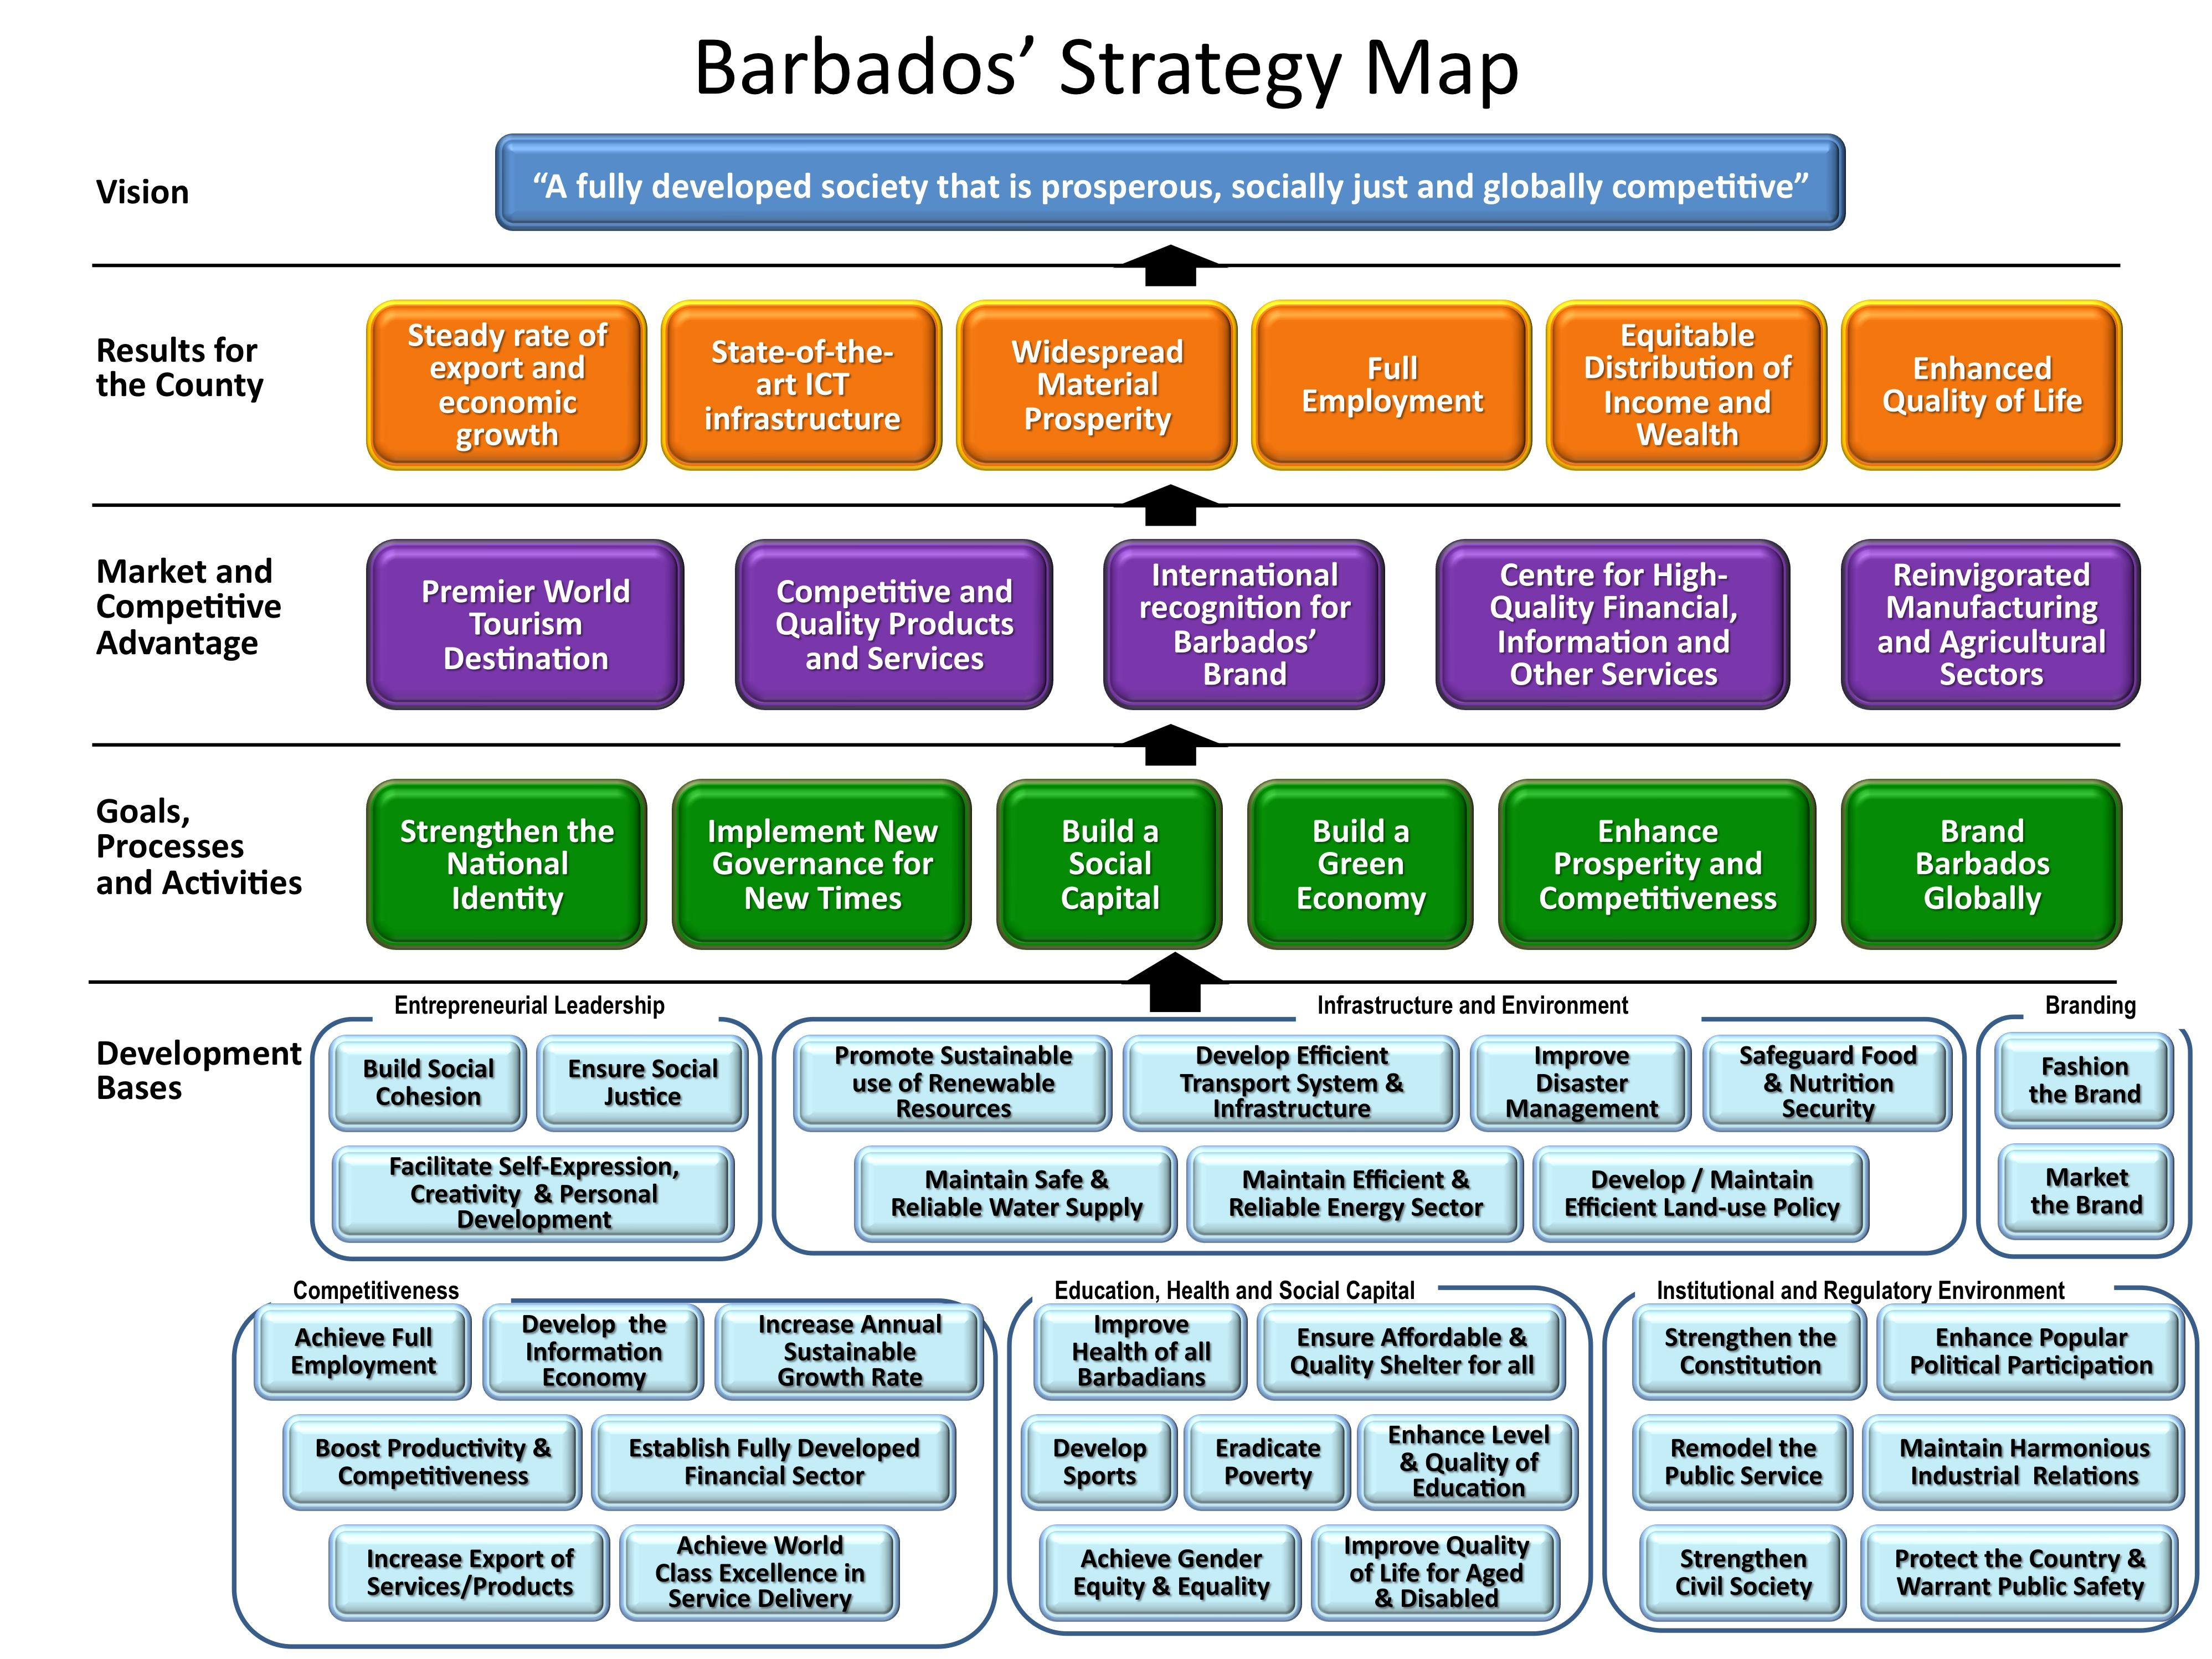 Strategy Map Analysis Examples Barbados Strategy Map Marketing Analysis Business Strategy